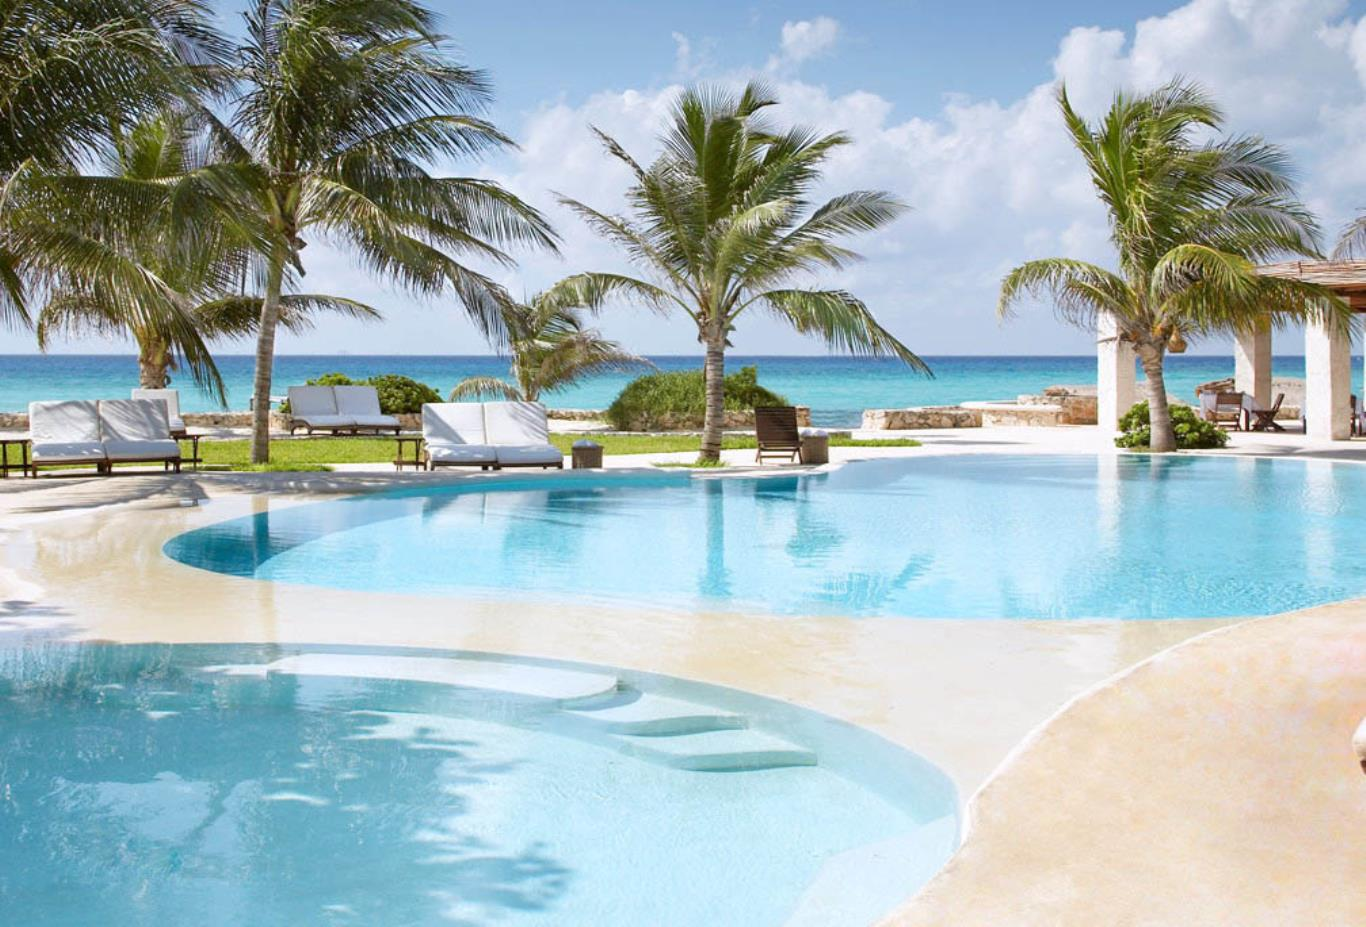 View of the swimming pools at Viceroy Riviera Maya in Cancun, Mexico